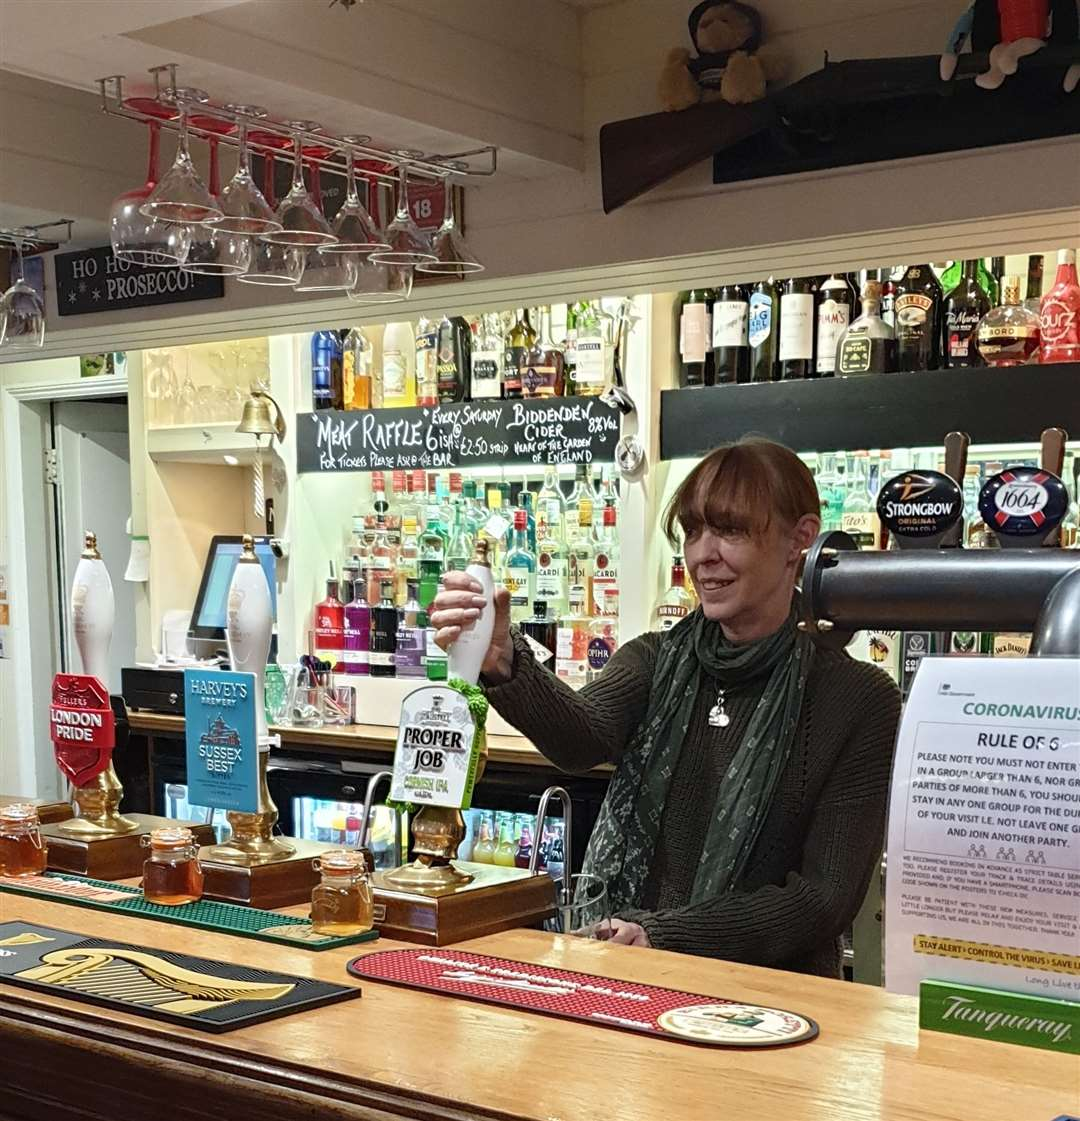 Siobhan Hanley is landlady at the King William IV in Pembury